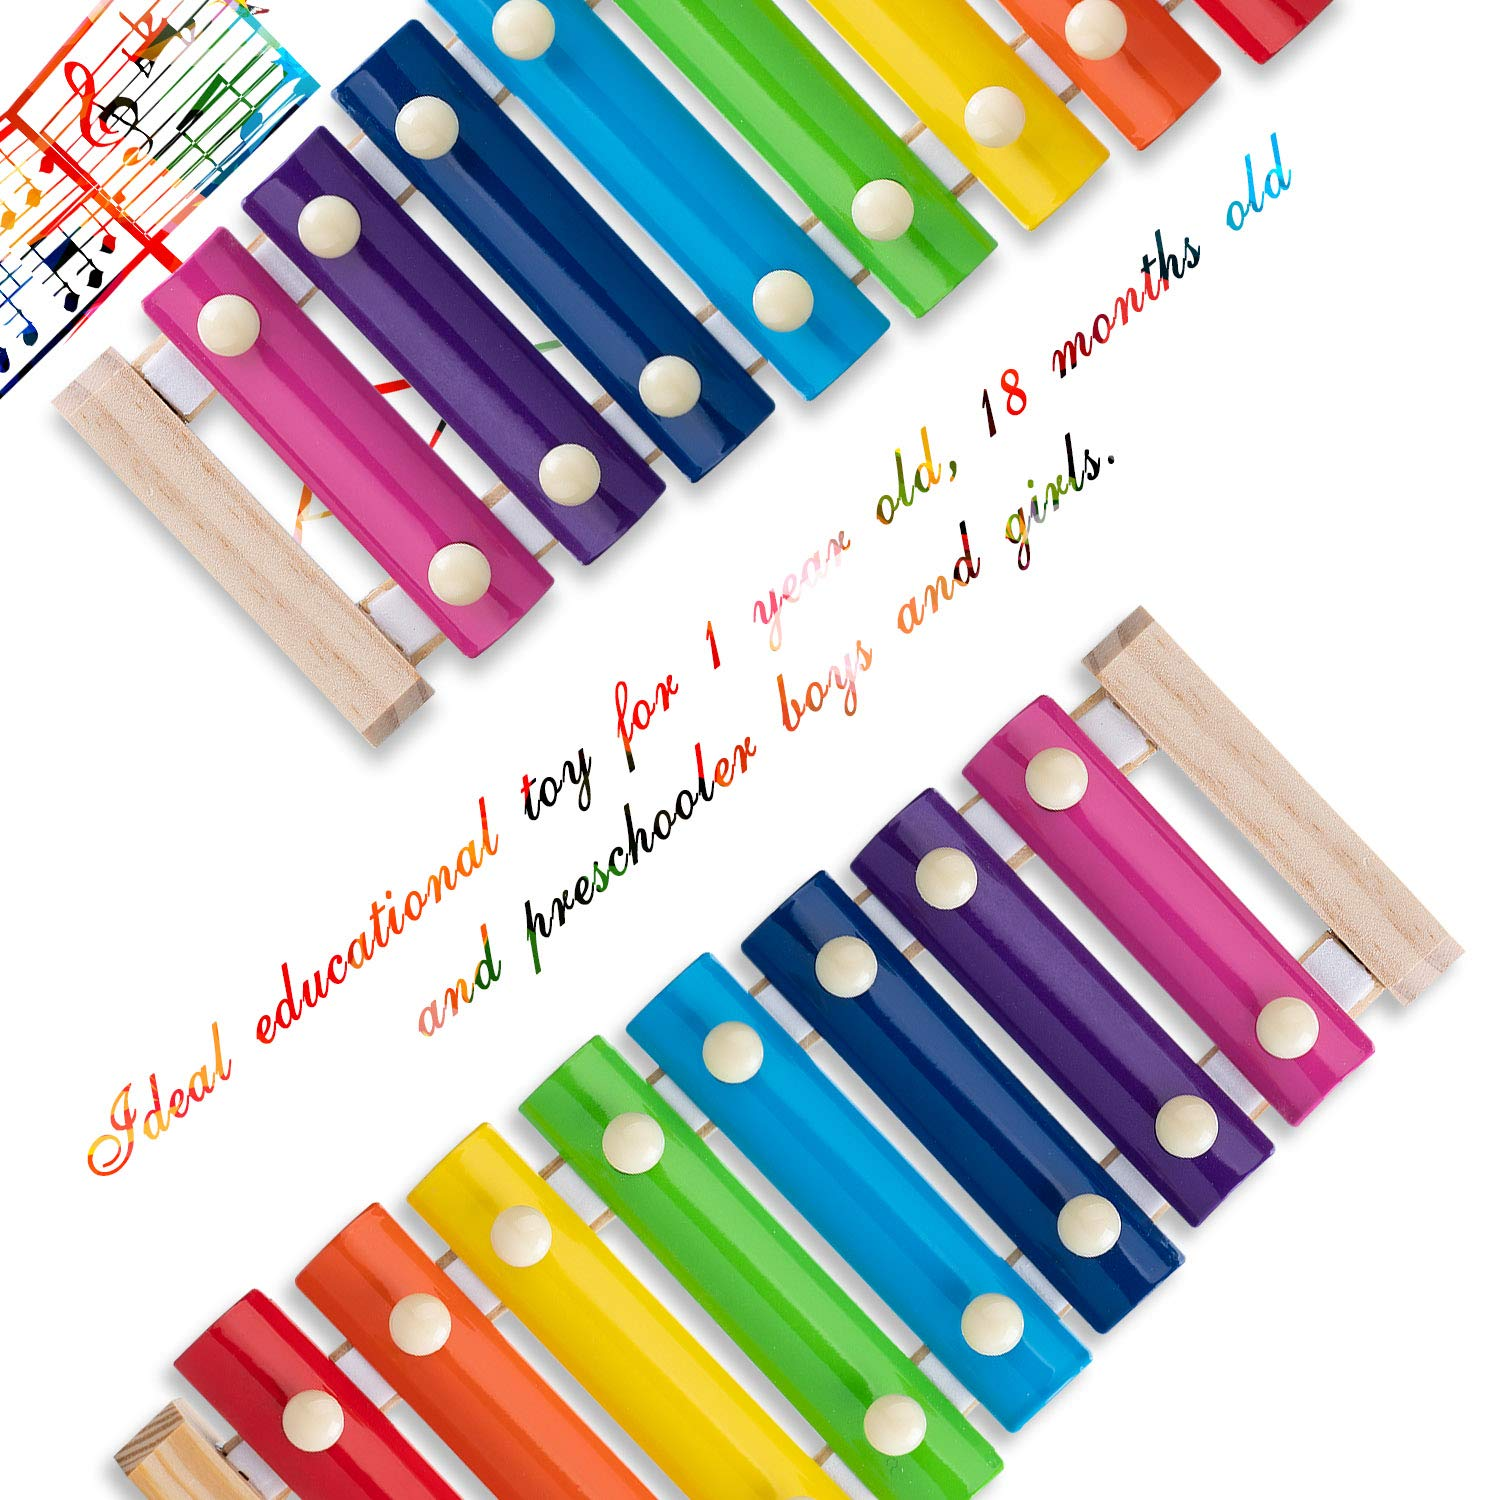 Xylophone for Kids Set Of Three Instrument Toys With Two Xylophone,One caterpillar toy-JiangChuan(2019 New Design),Best Birthday/Holiday Gift For Children's with Two Safe Mallets,Free Music socure by JiangChuan (Image #3)